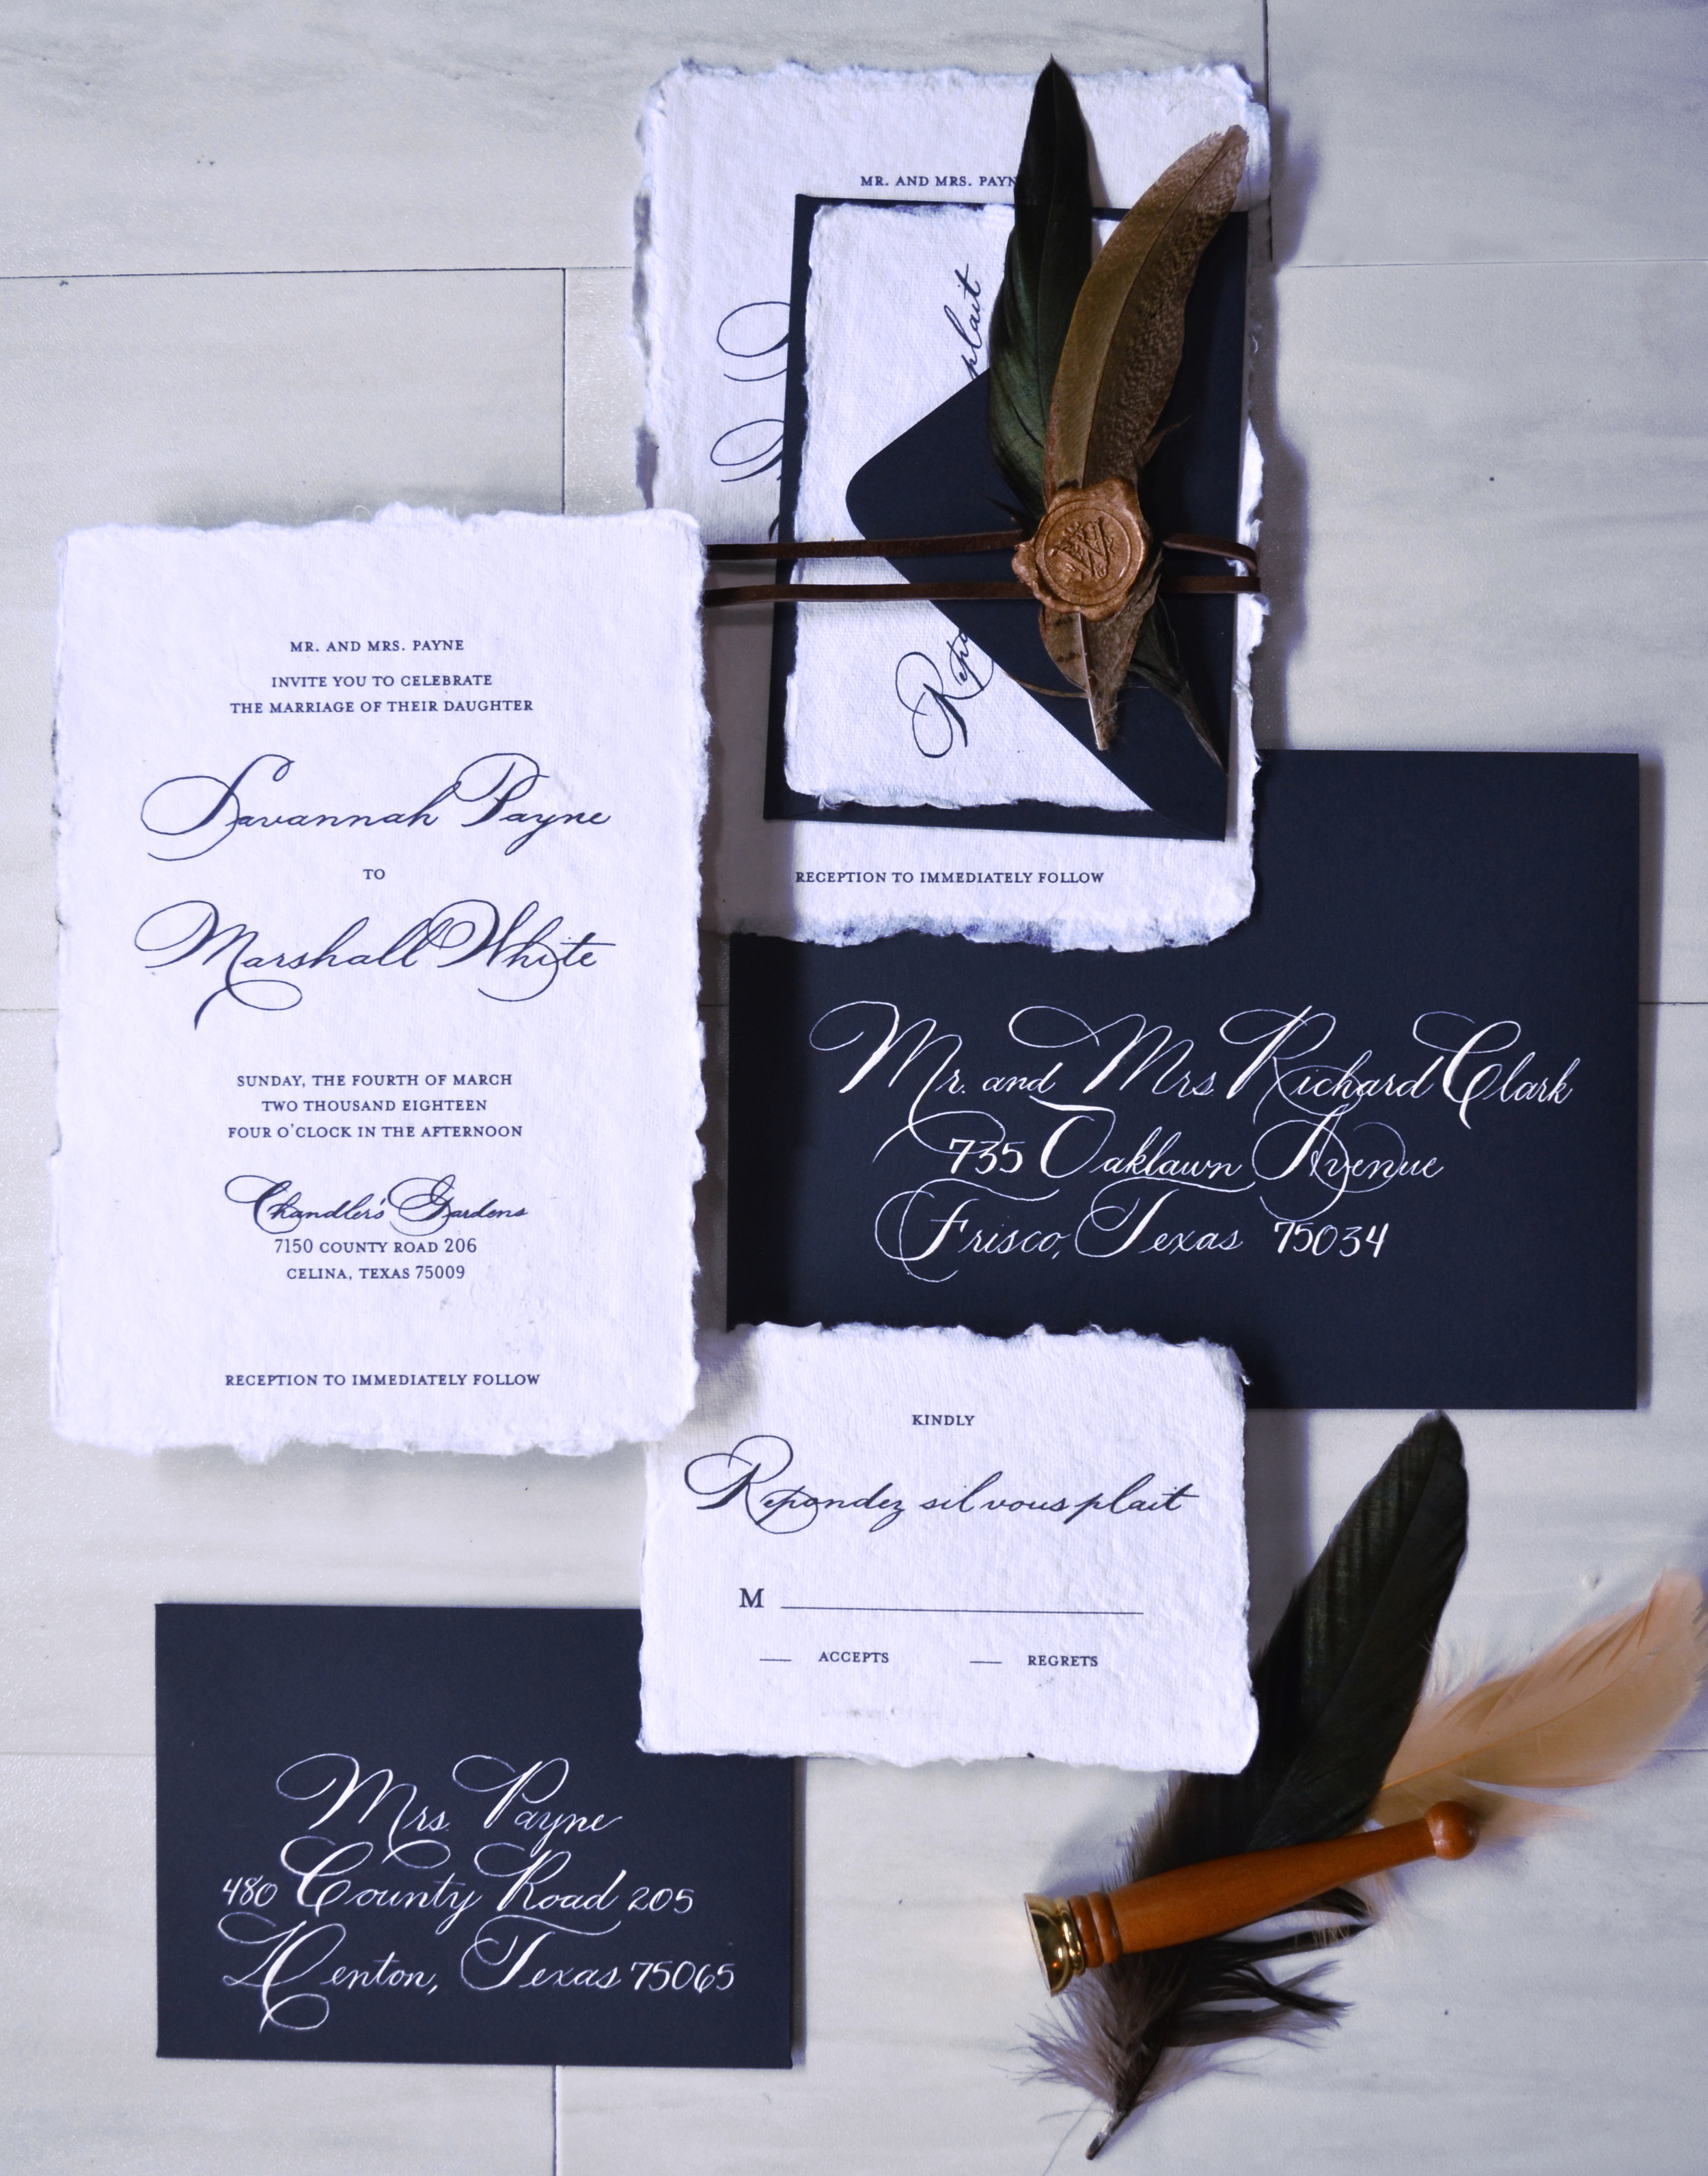 Wedding Invitation Suite w/handmade paper, a leather wrap, feathers, and a wax seal enclosure.